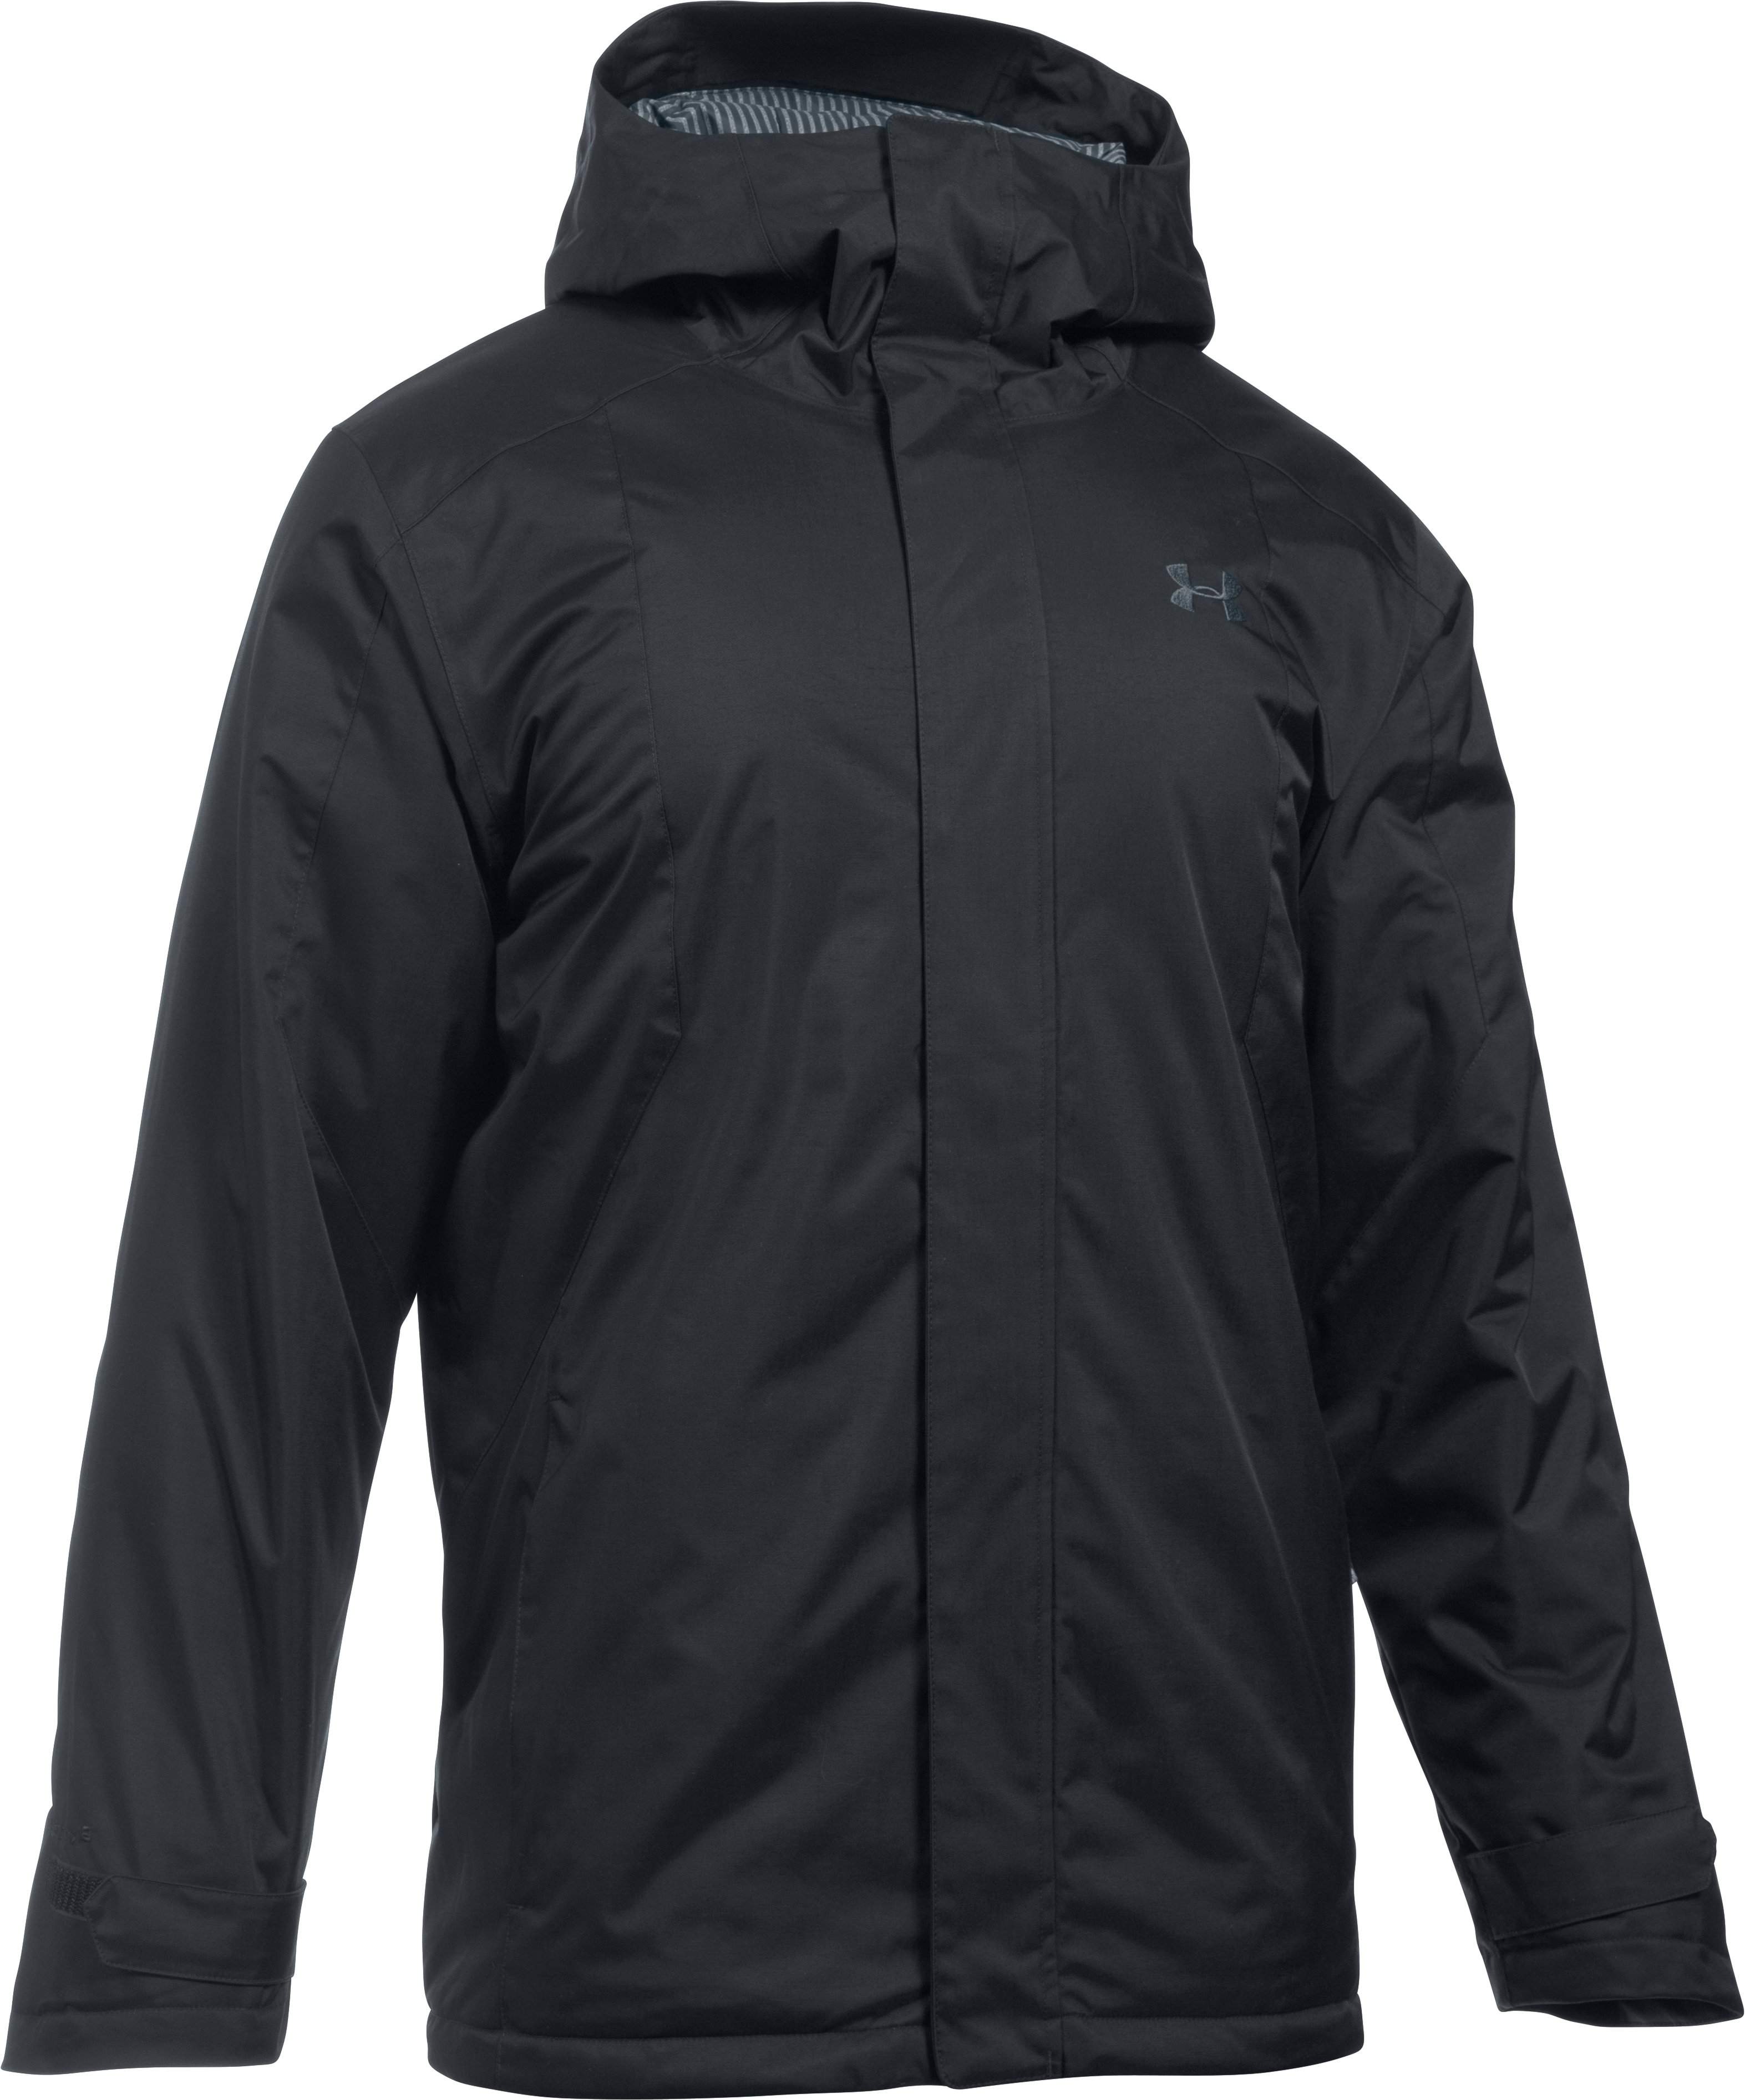 Men's ColdGear® Reactor Yonders Jacket, Black , undefined